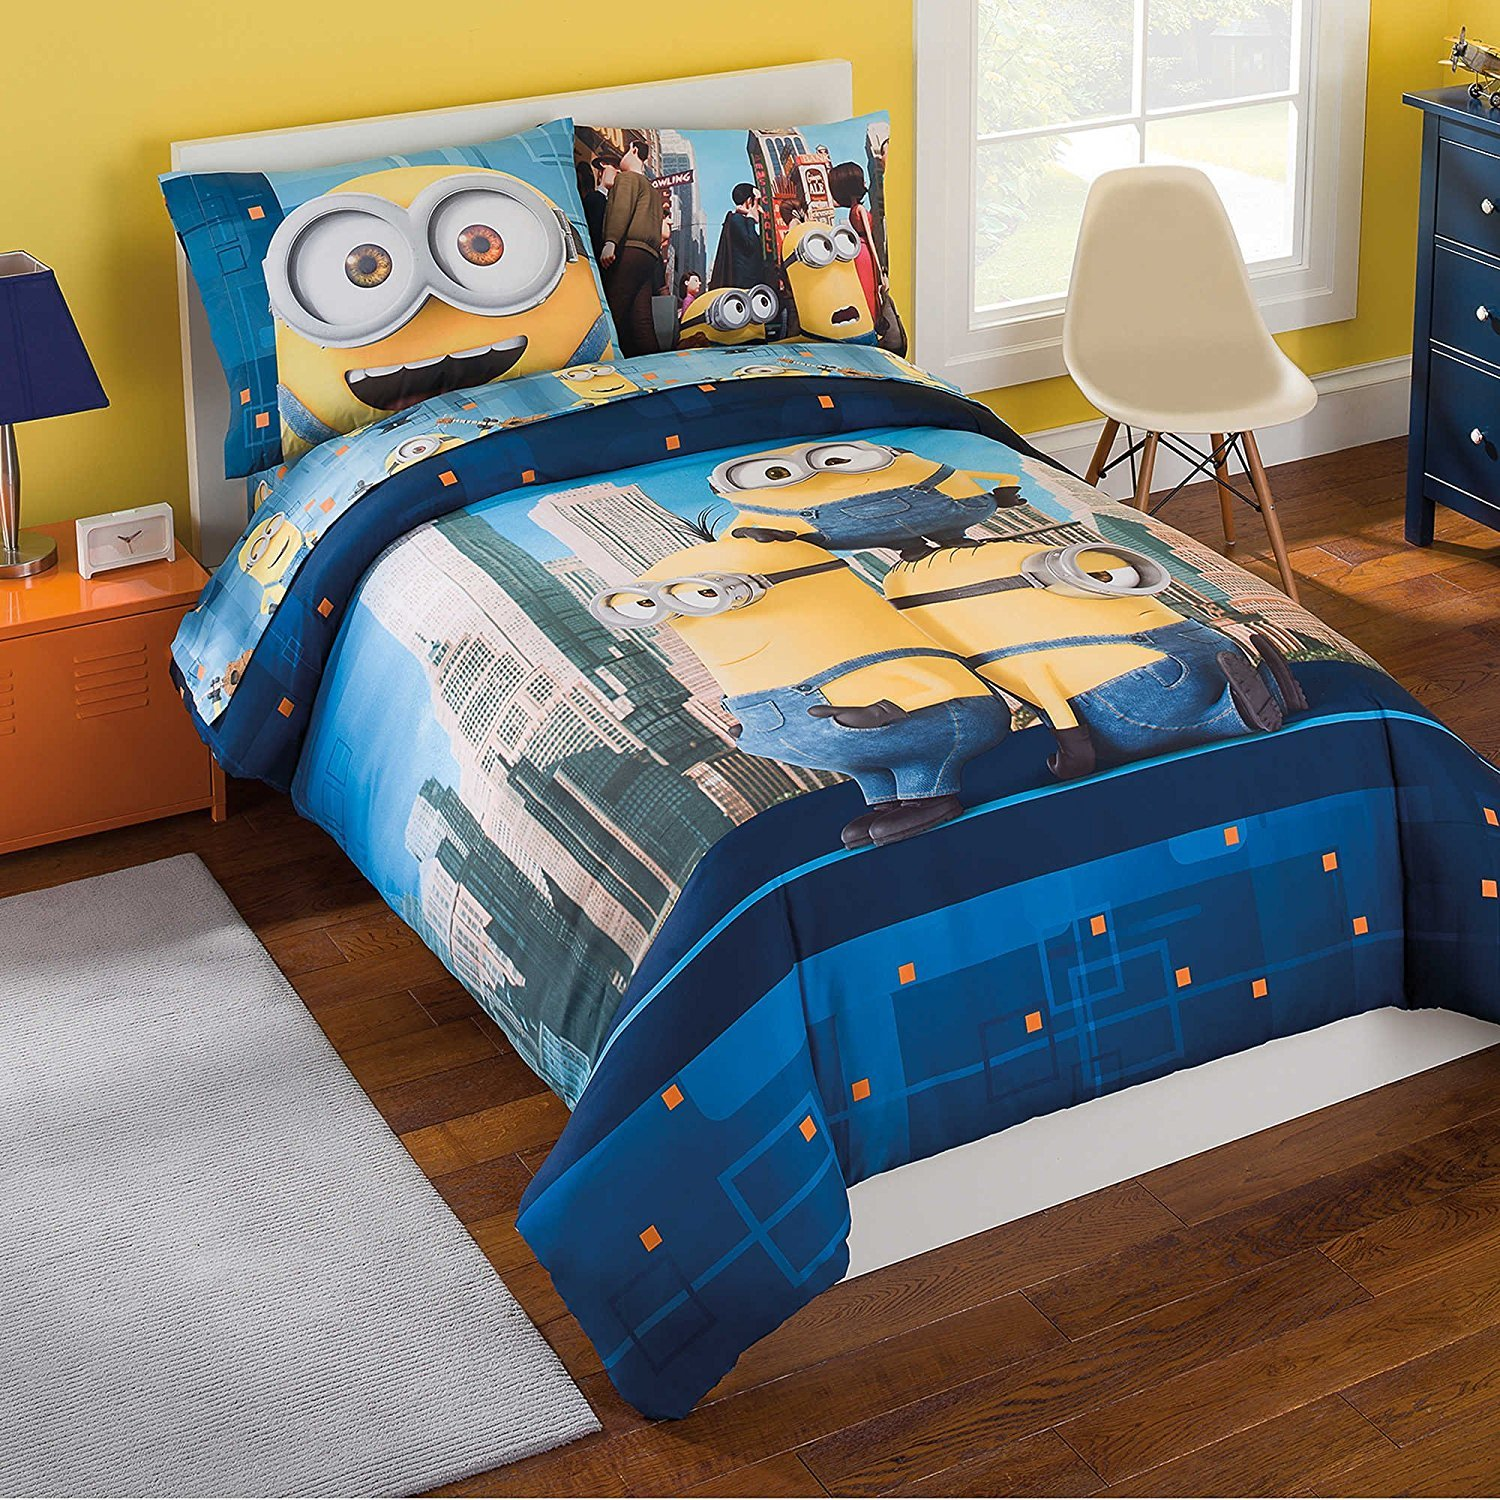 Minions Reversible Bed Set Comforter 6 Piece Sheet, Full Size